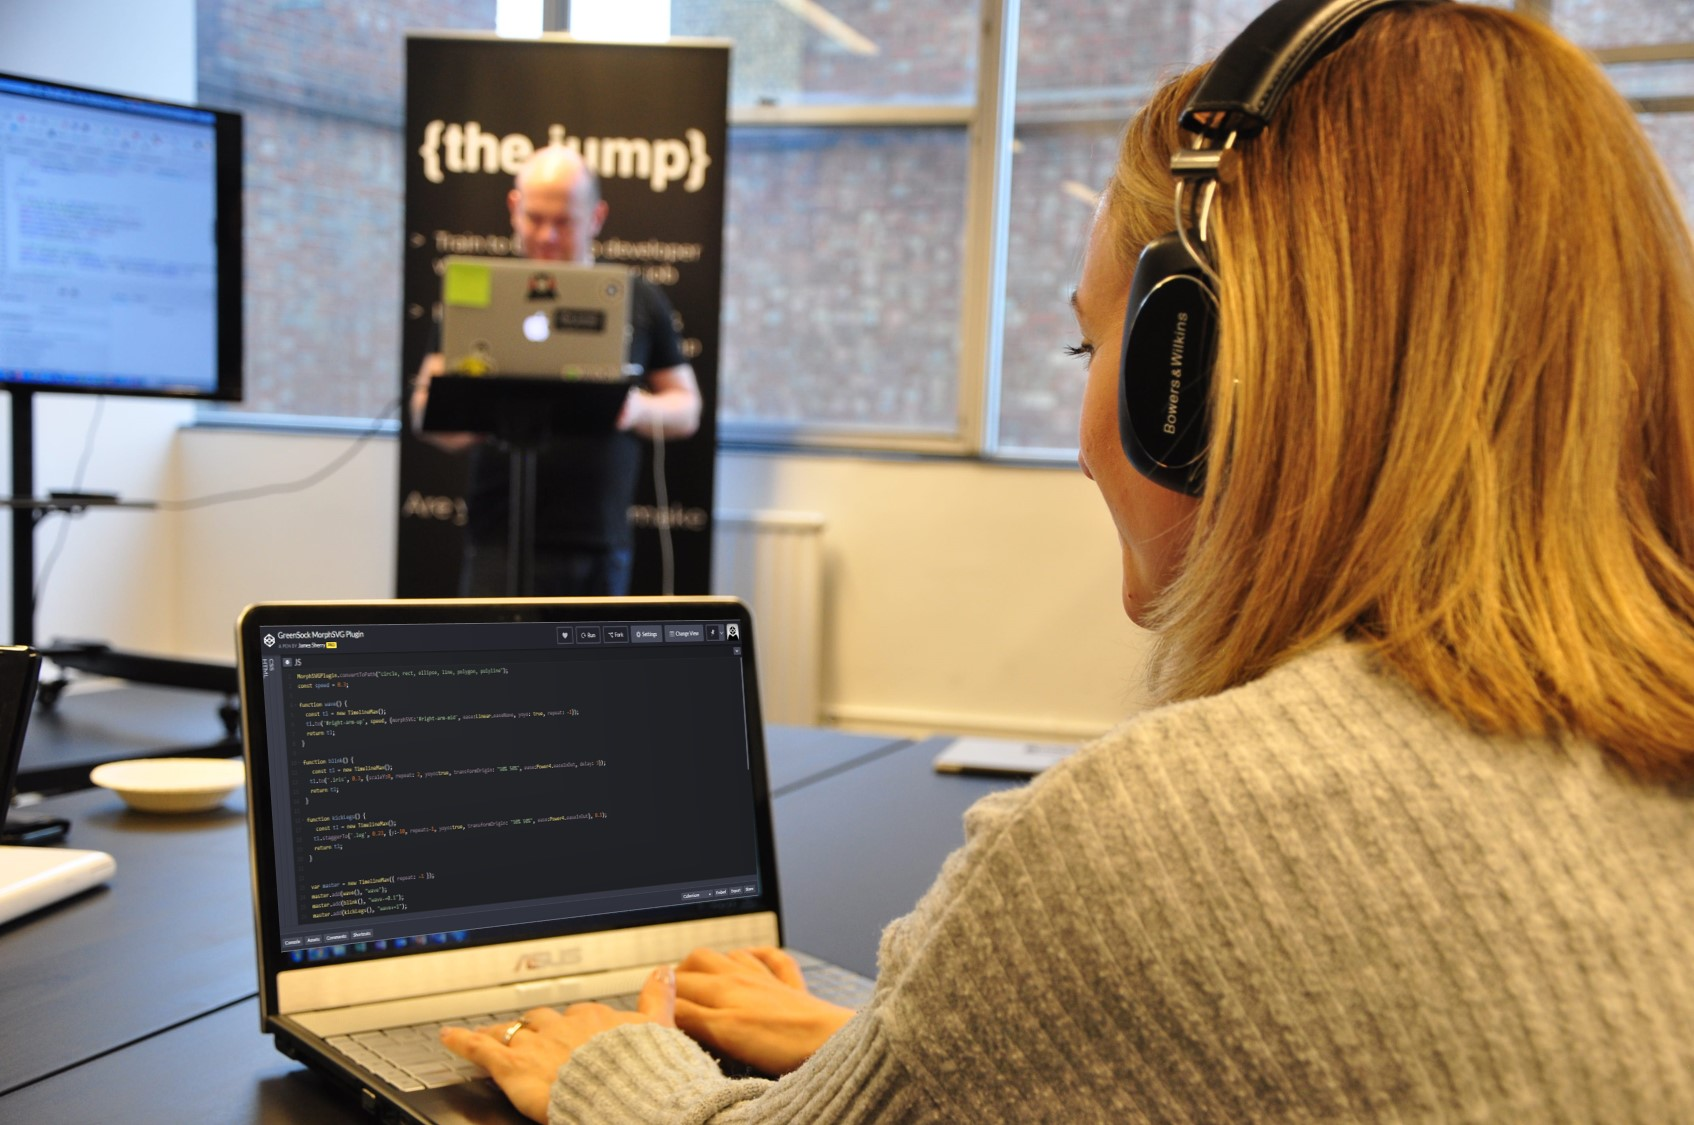 Coding bootcamp London, become a professional front-end web developer